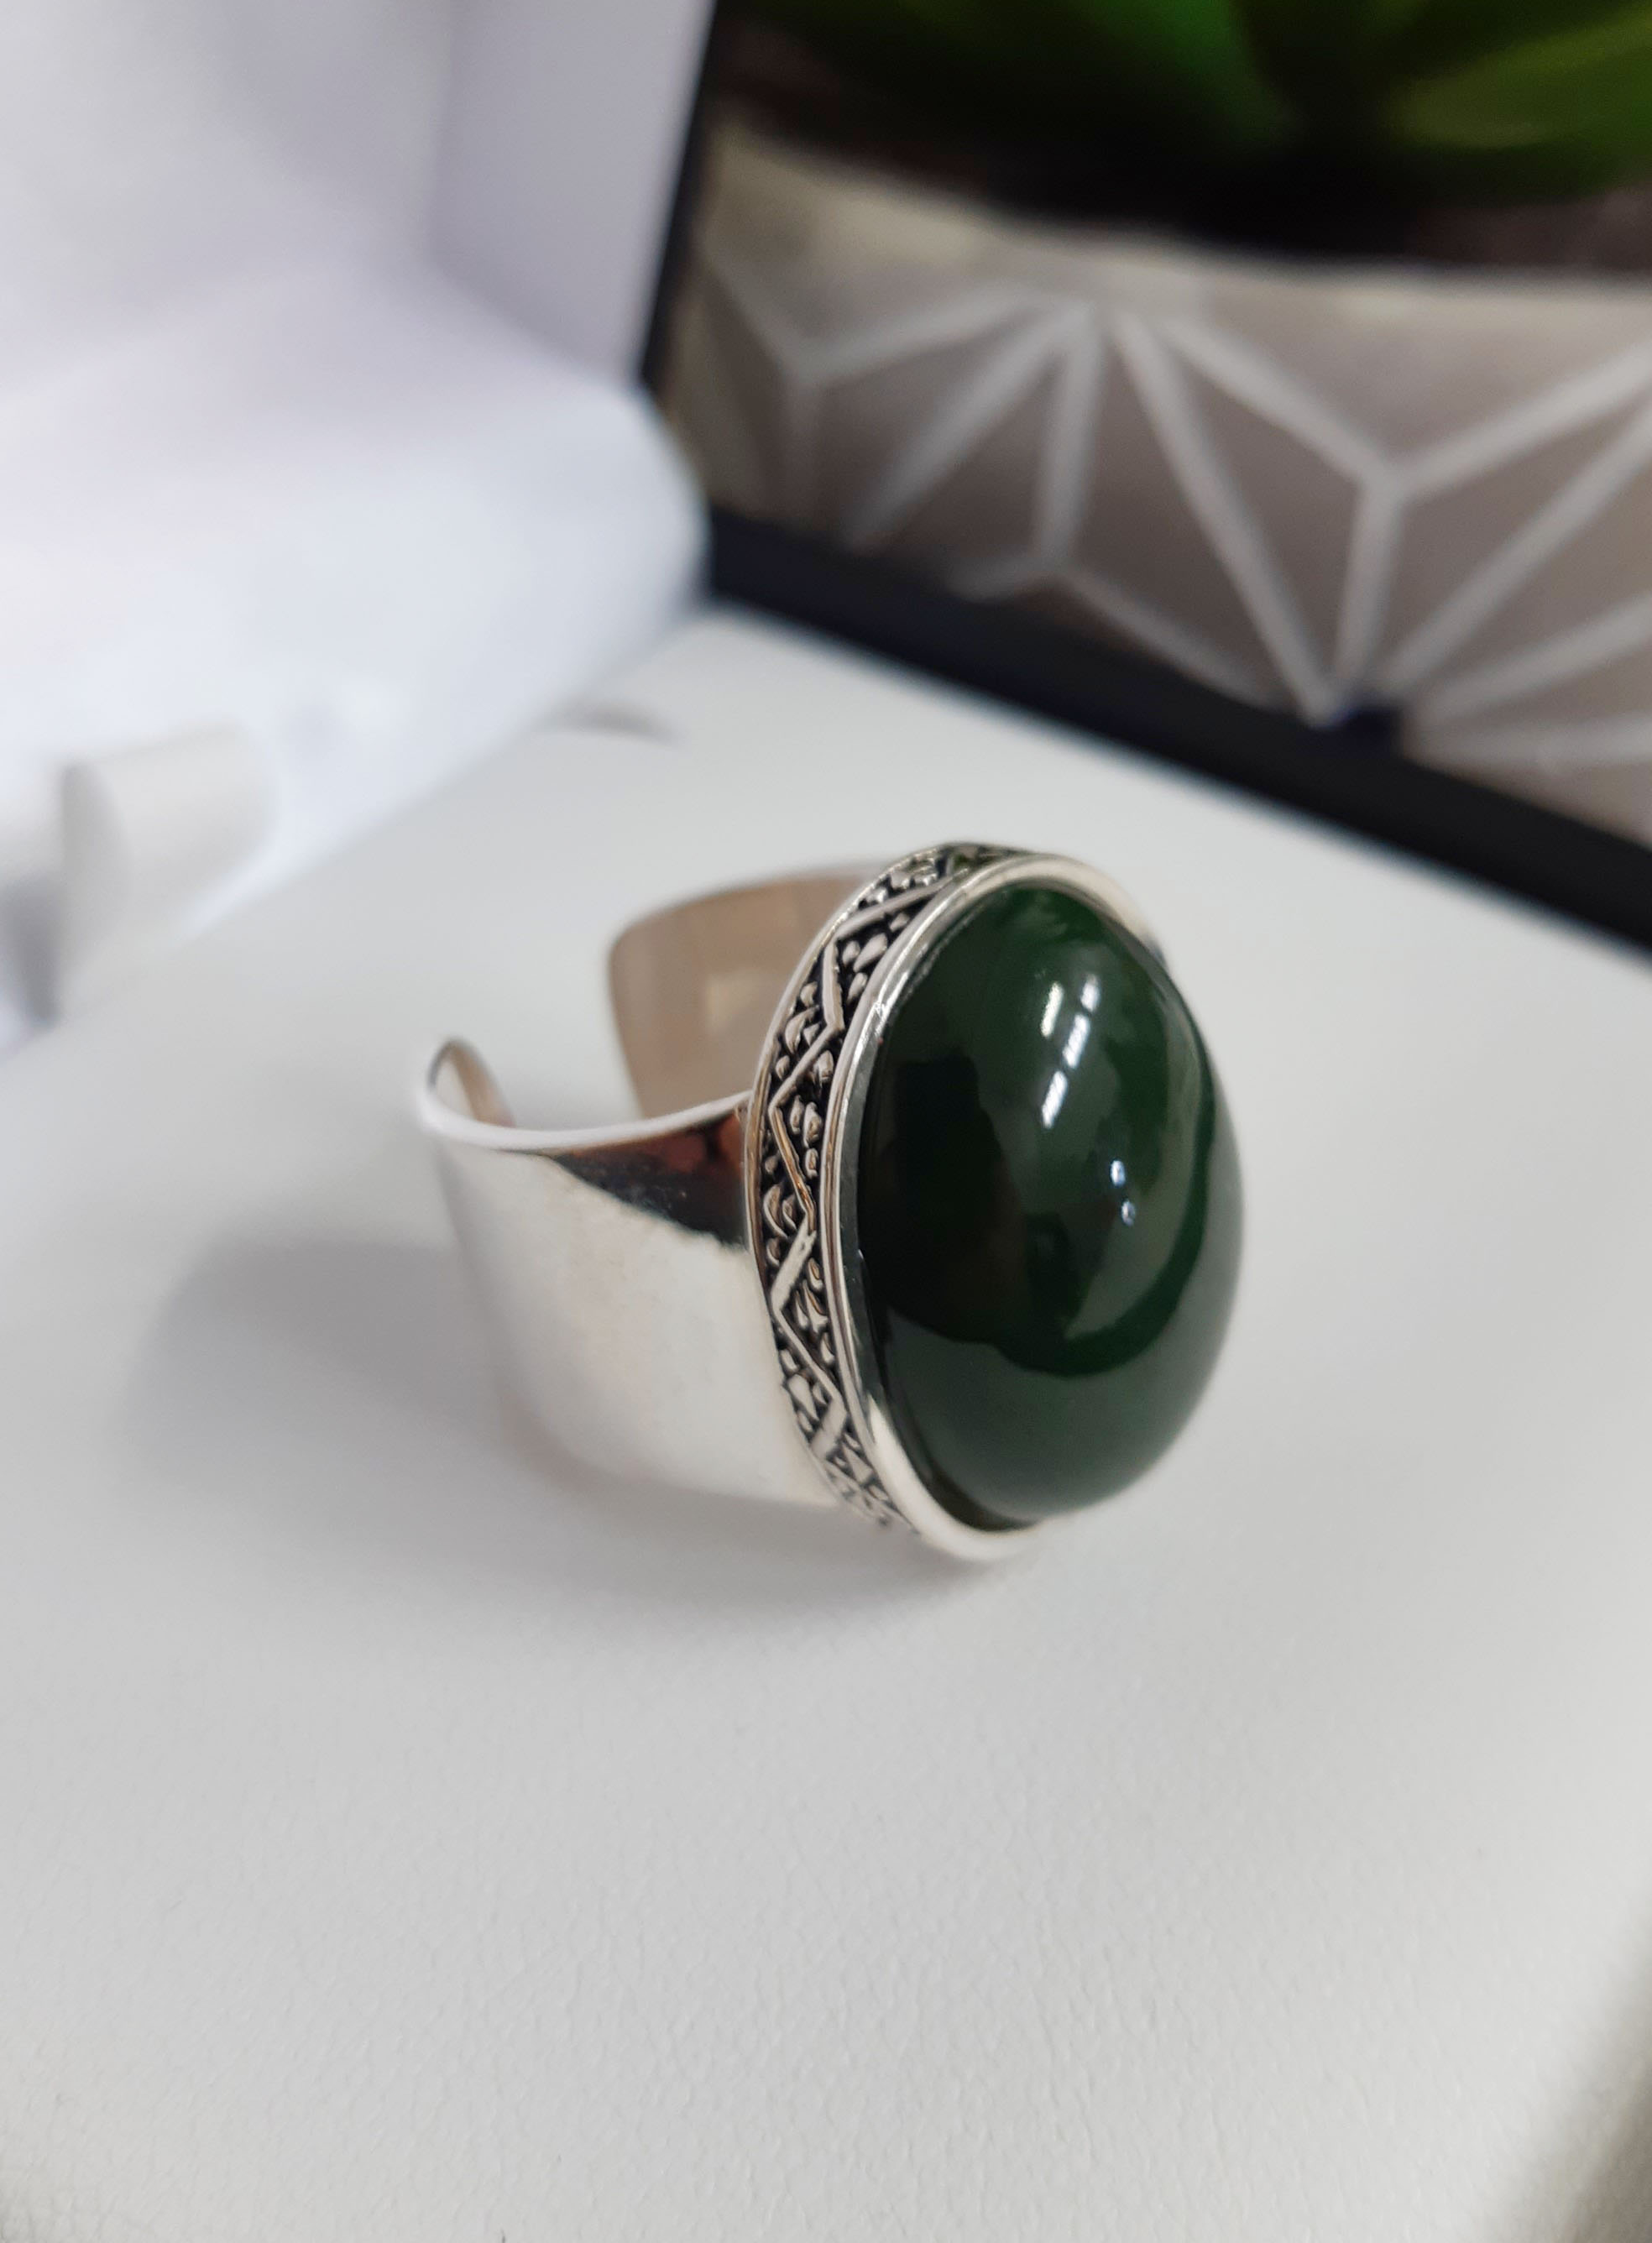 Sterling Silver Ring with Kawakawa Pounamu cabochon 16mm Solid adjustable Sterling Silver Ring with Inanga Pounamu cabochon Primary ring size 7-8